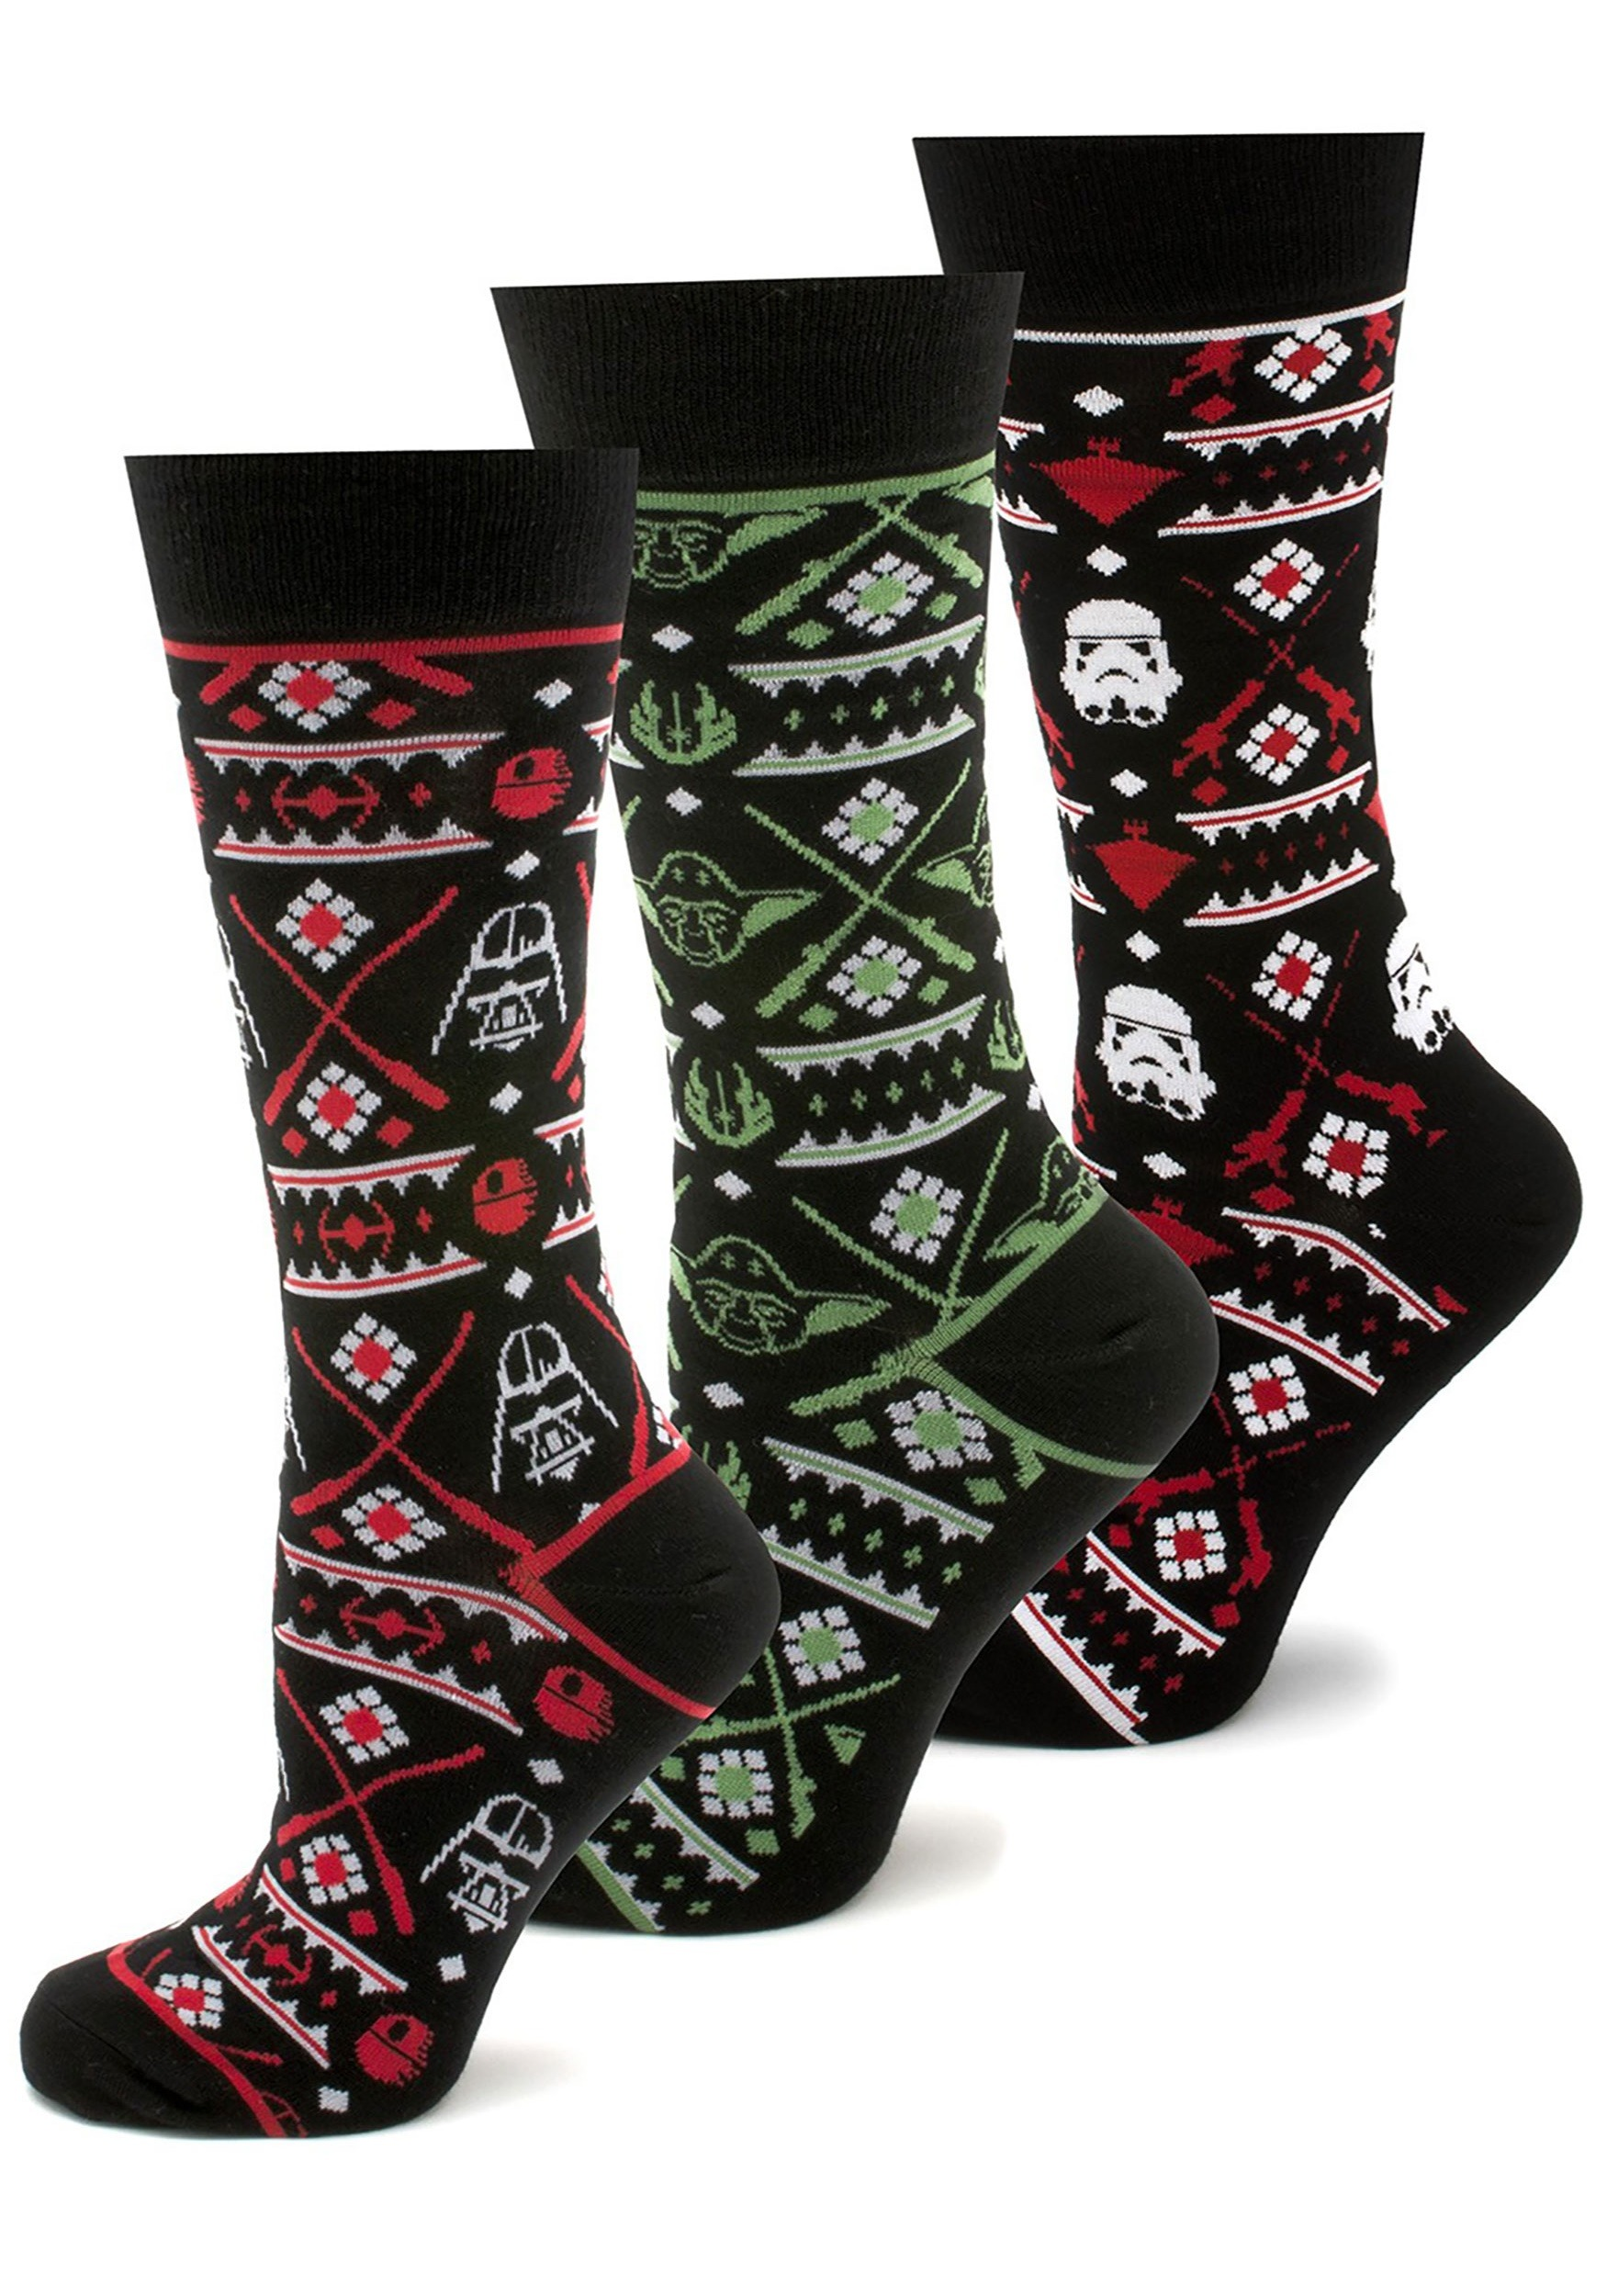 ad4a89ee8 Men s 3 Pair Set of Star Wars Holiday Ugly Sweater Socks